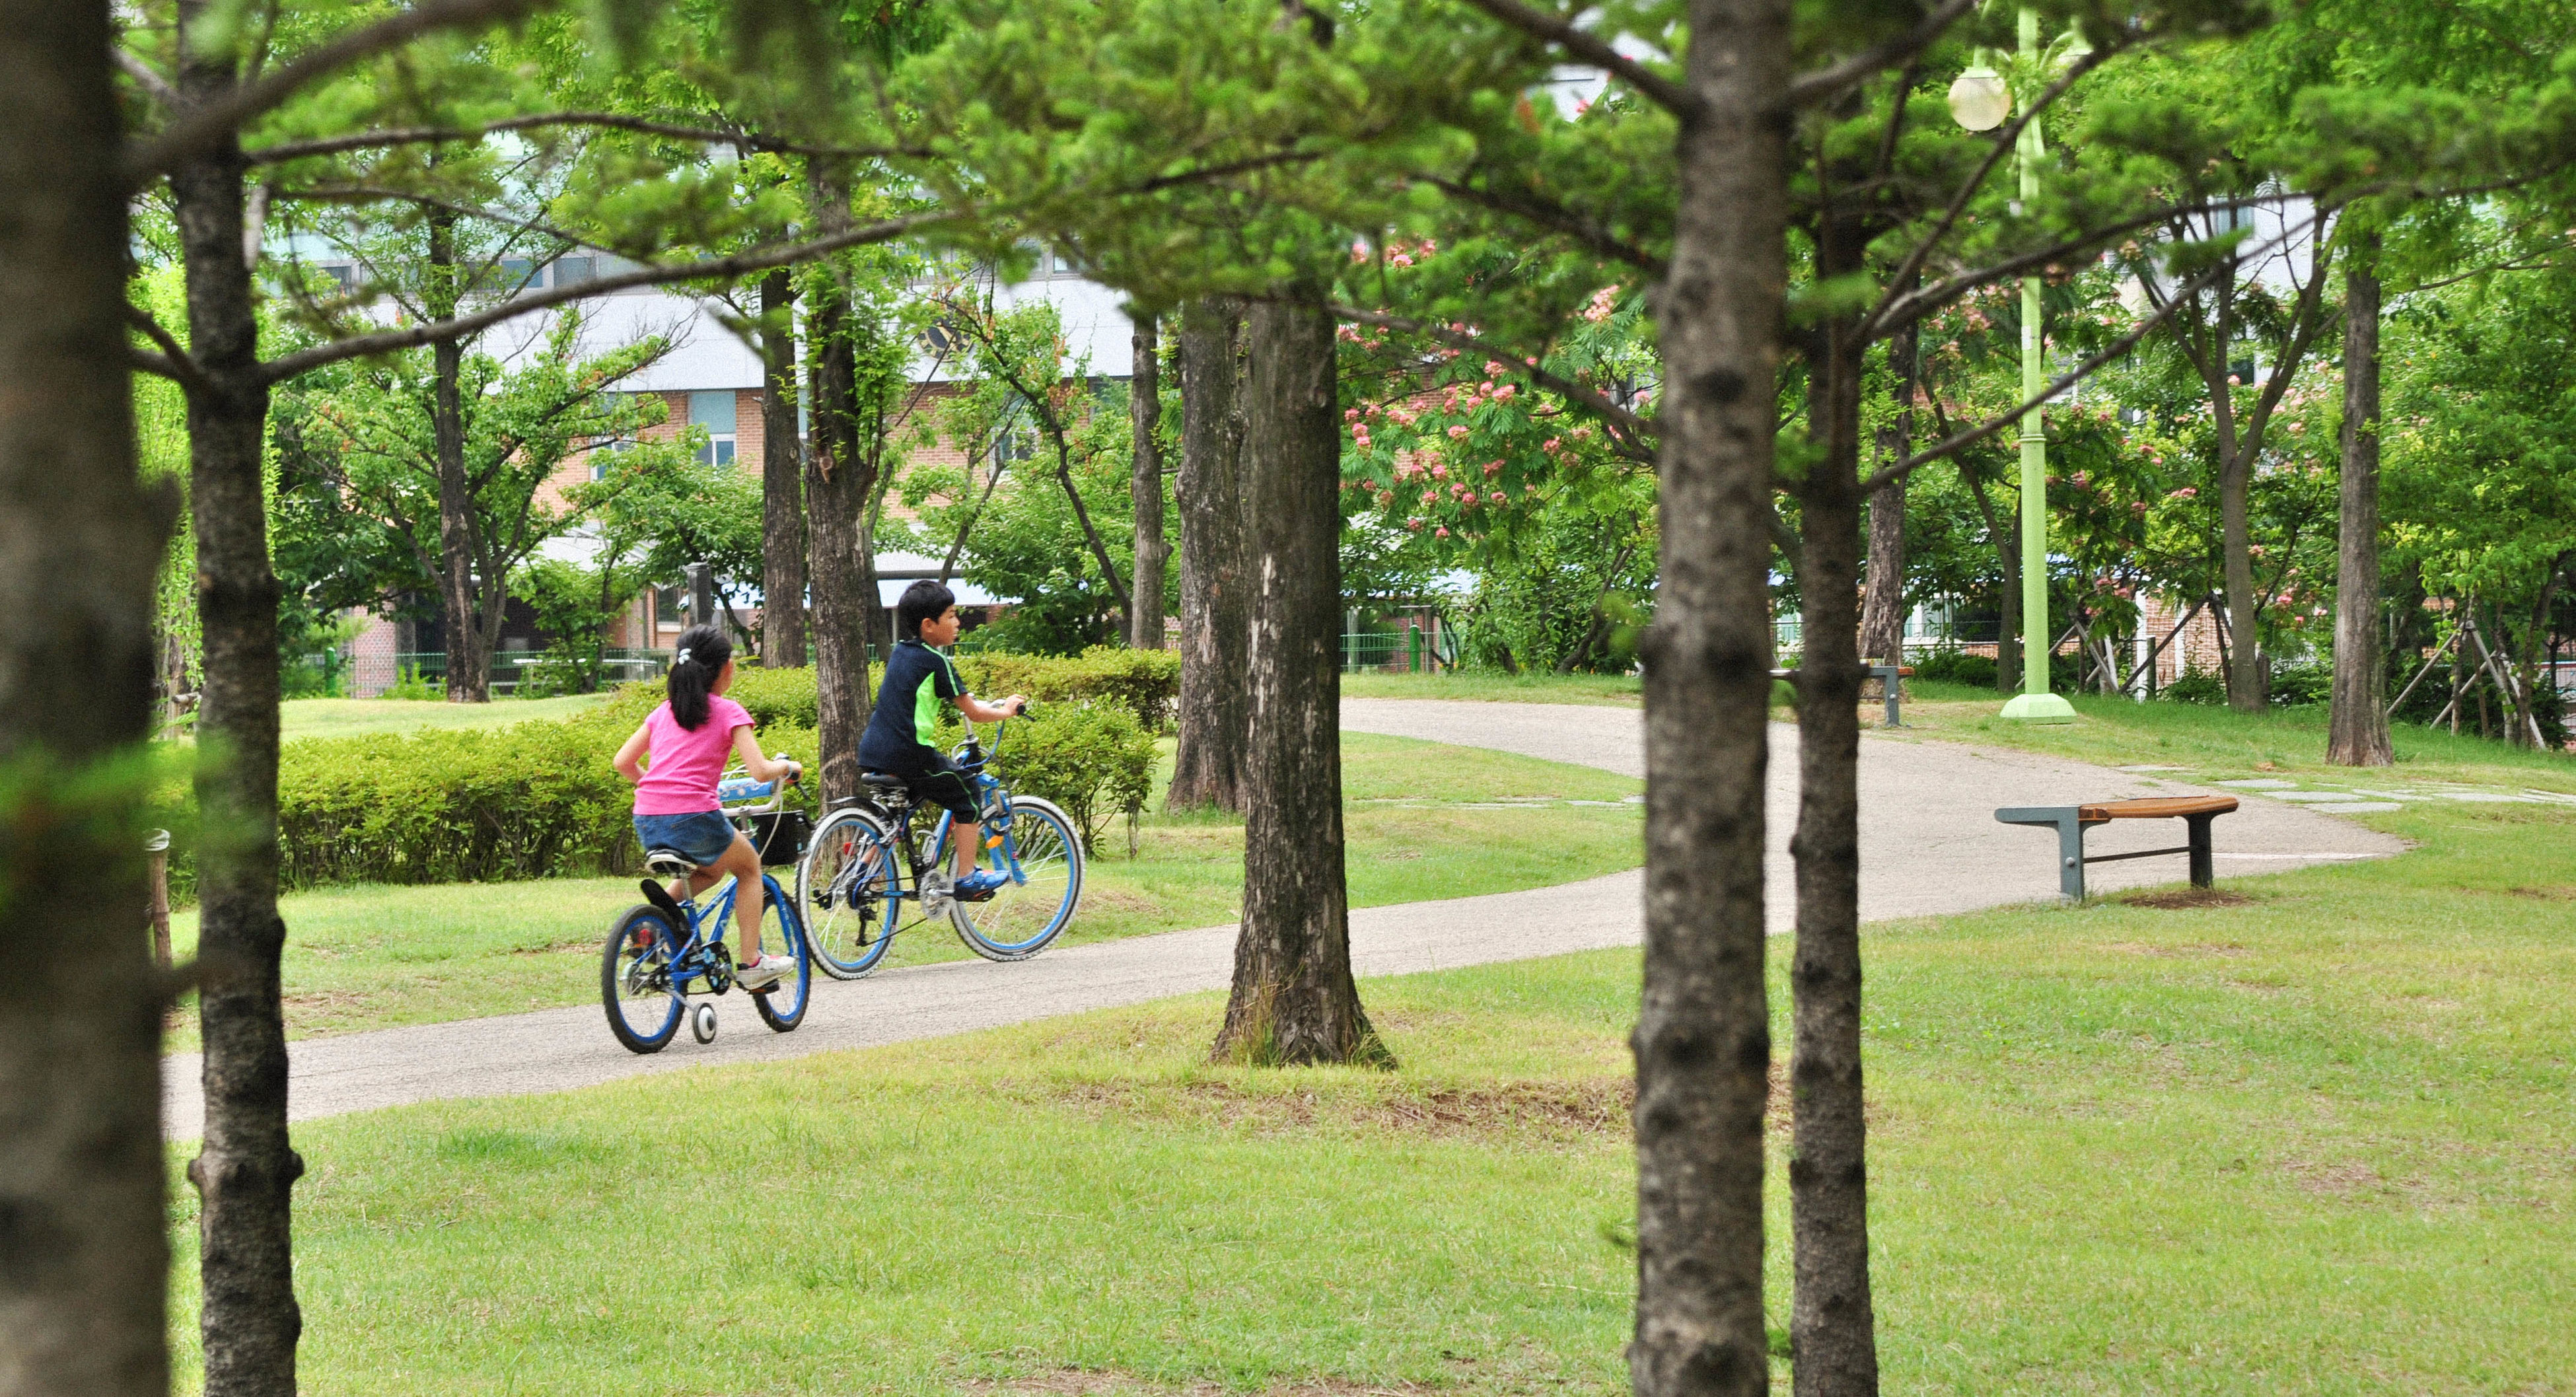 bicycle, tree, grass, lifestyles, land vehicle, transportation, riding, leisure activity, men, mode of transport, full length, green color, cycling, park - man made space, sunlight, sport, shadow